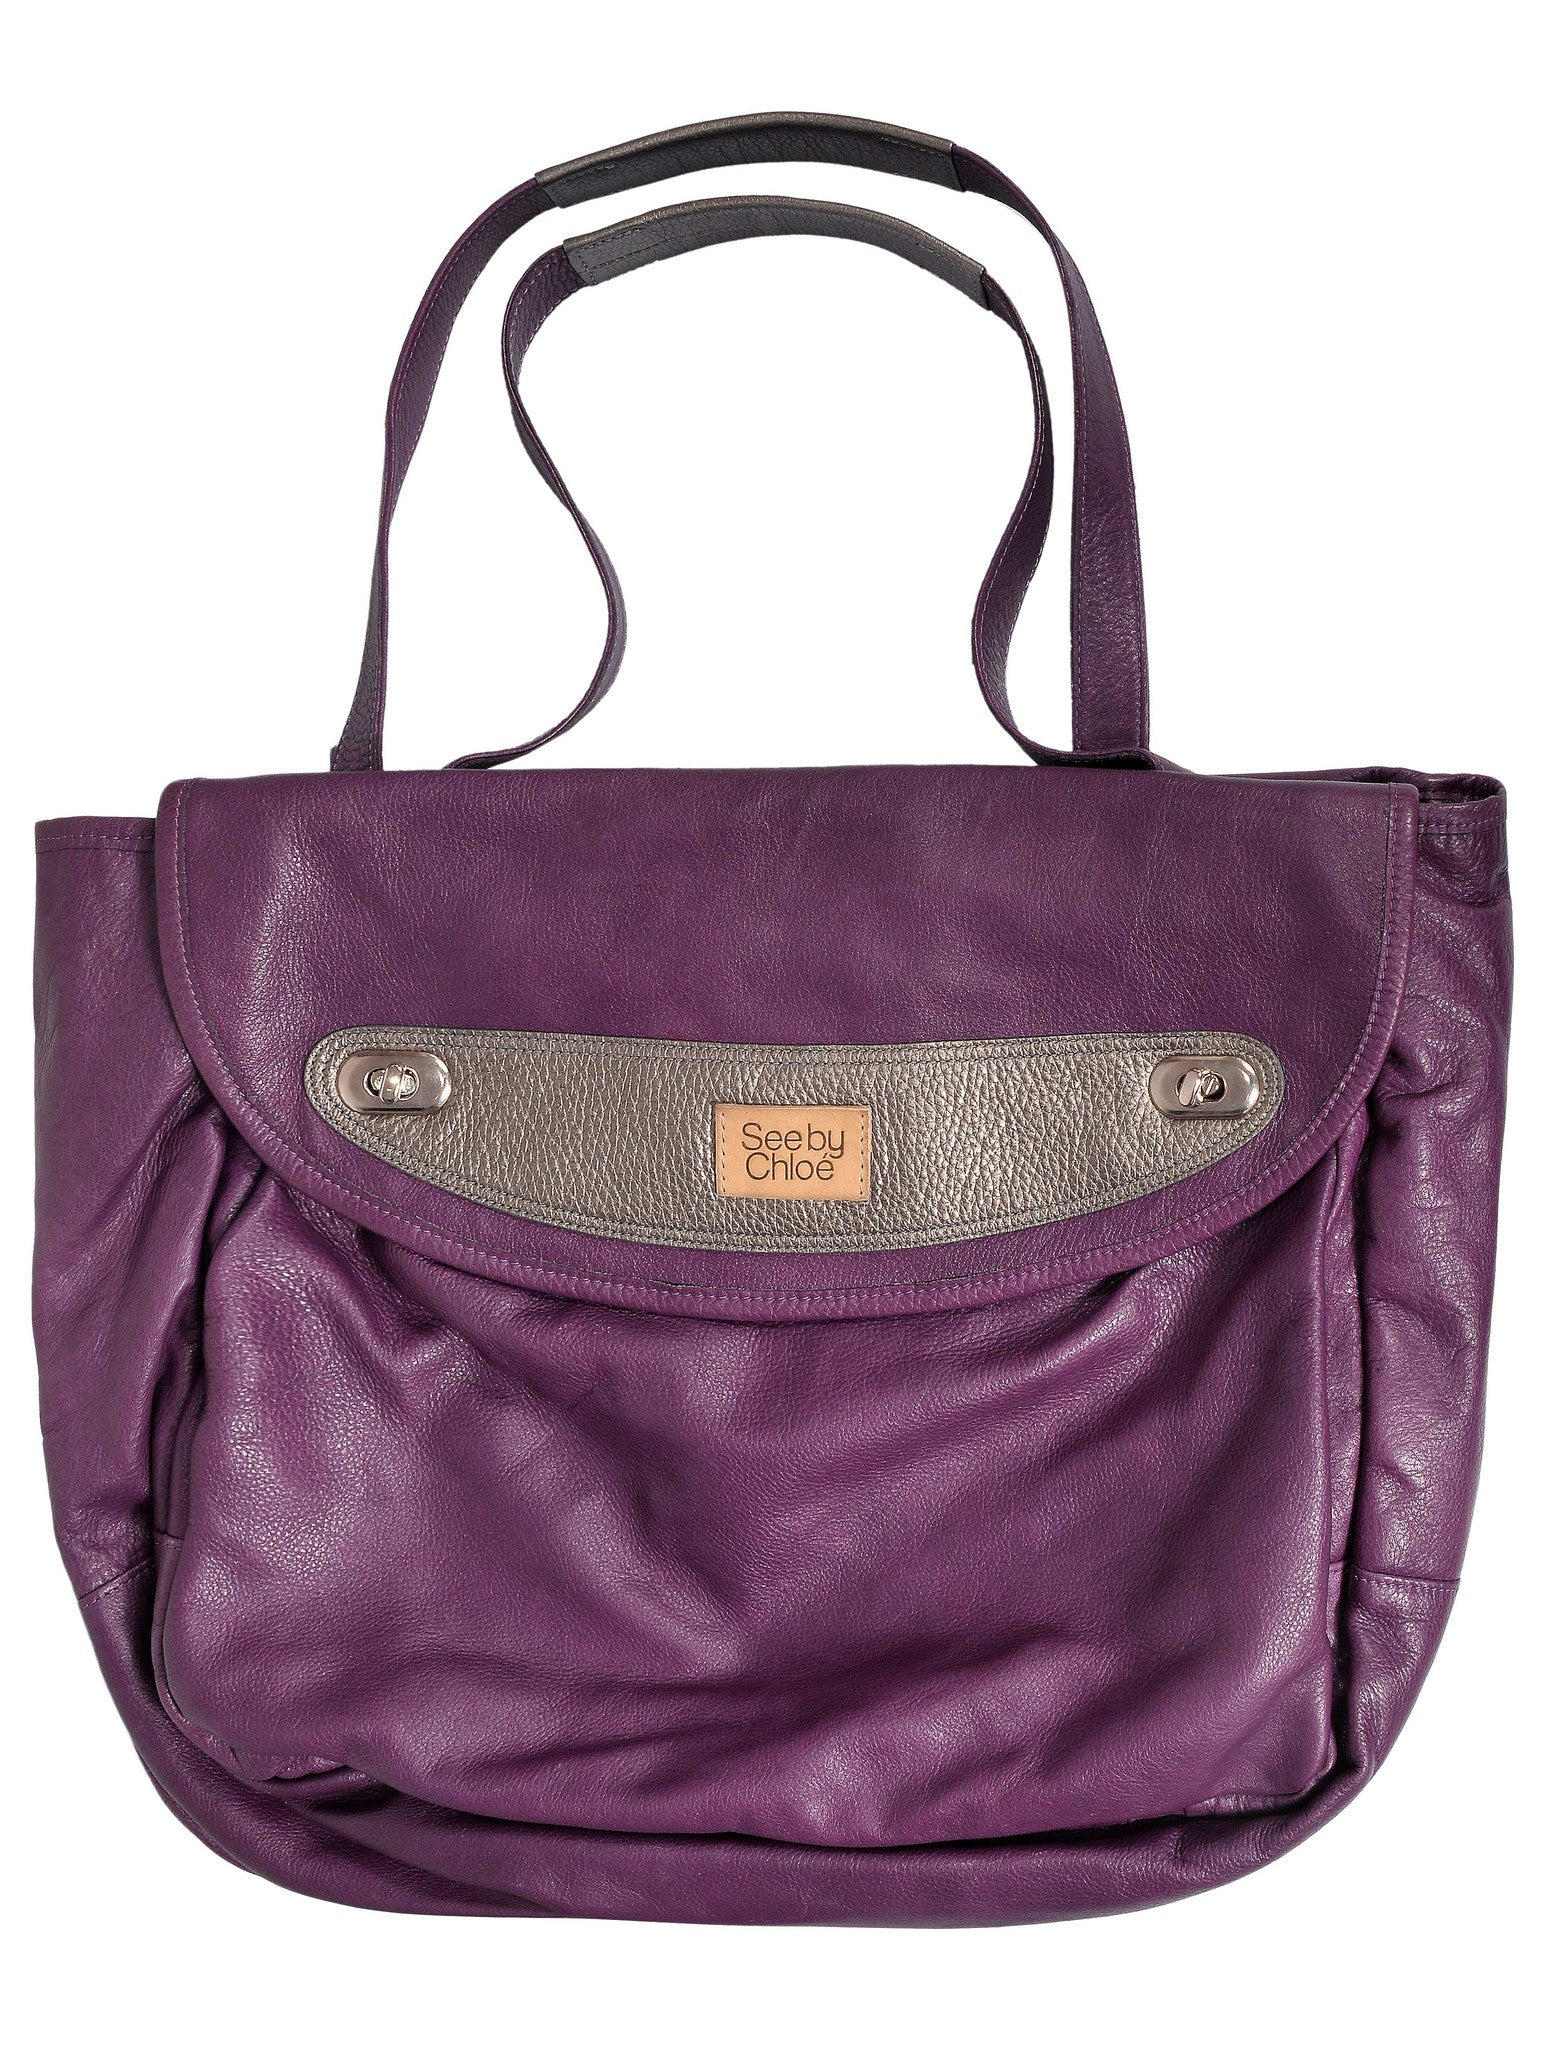 LEATHER SHOULDER TOTE BAG